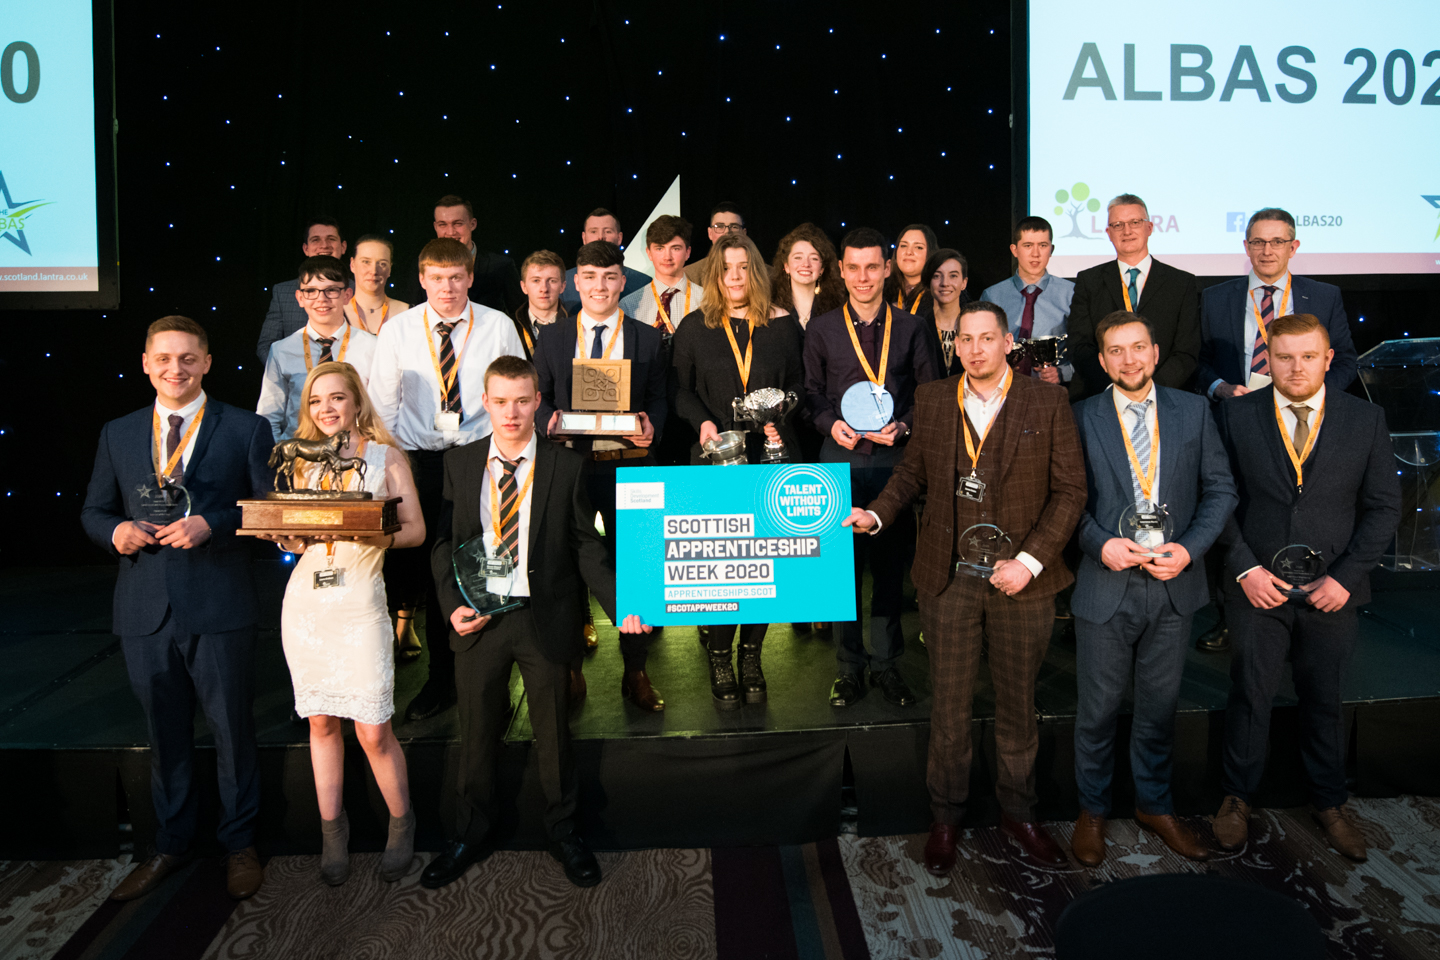 Last year's ALBA awards finalists